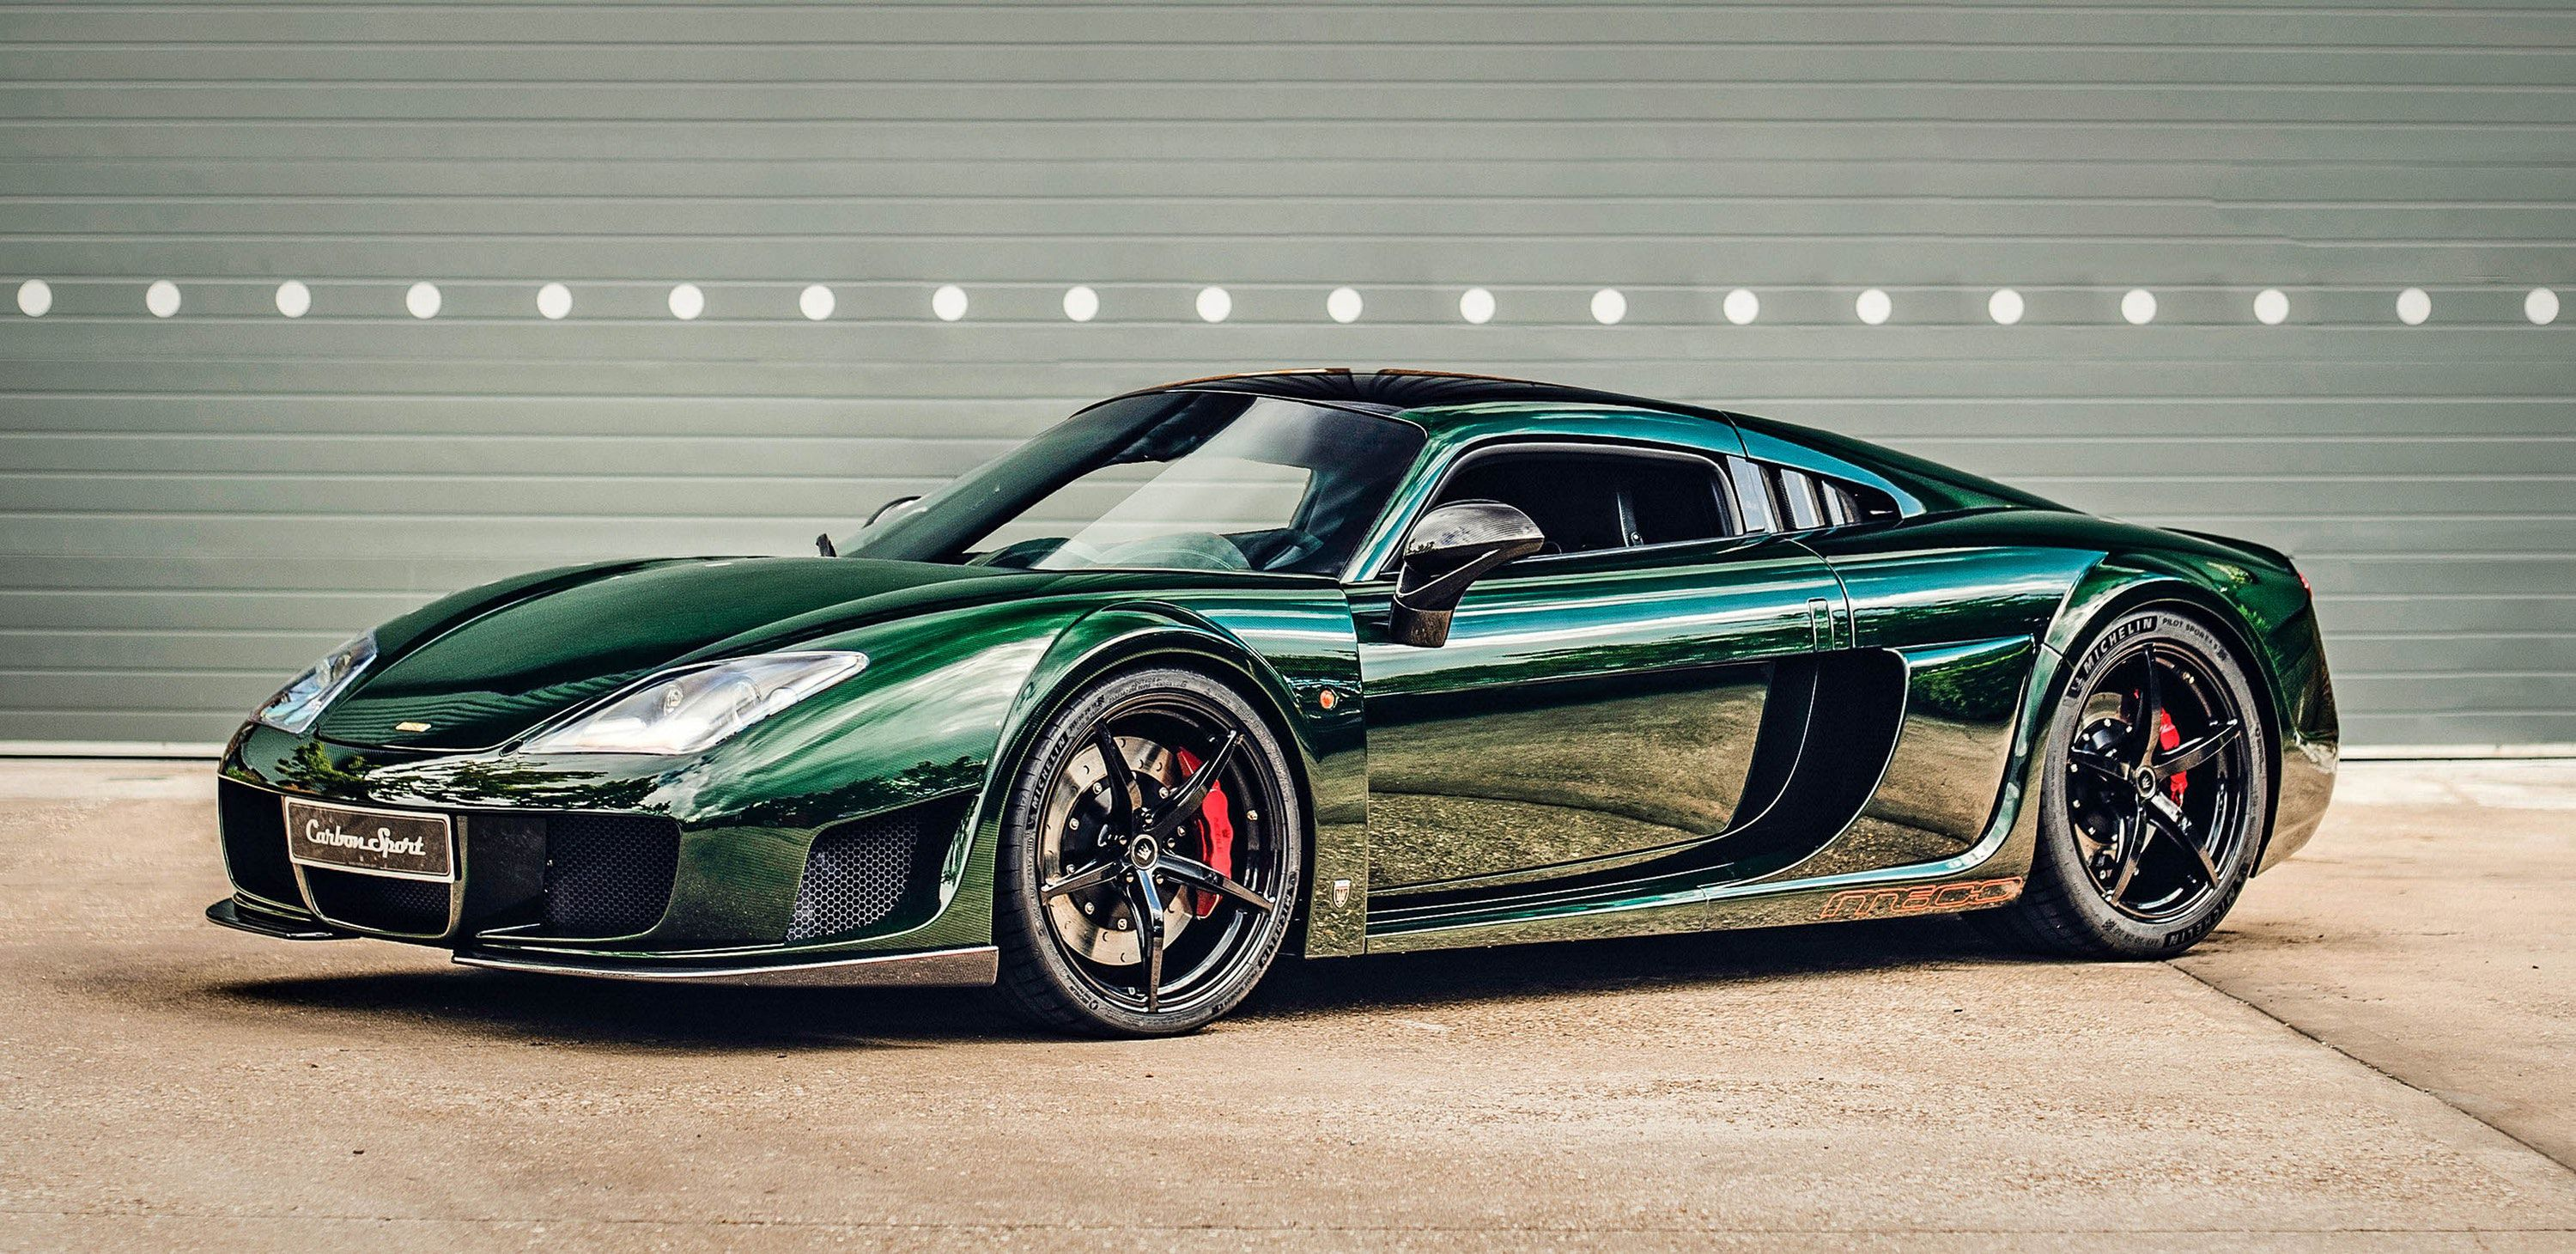 Noble M600 green